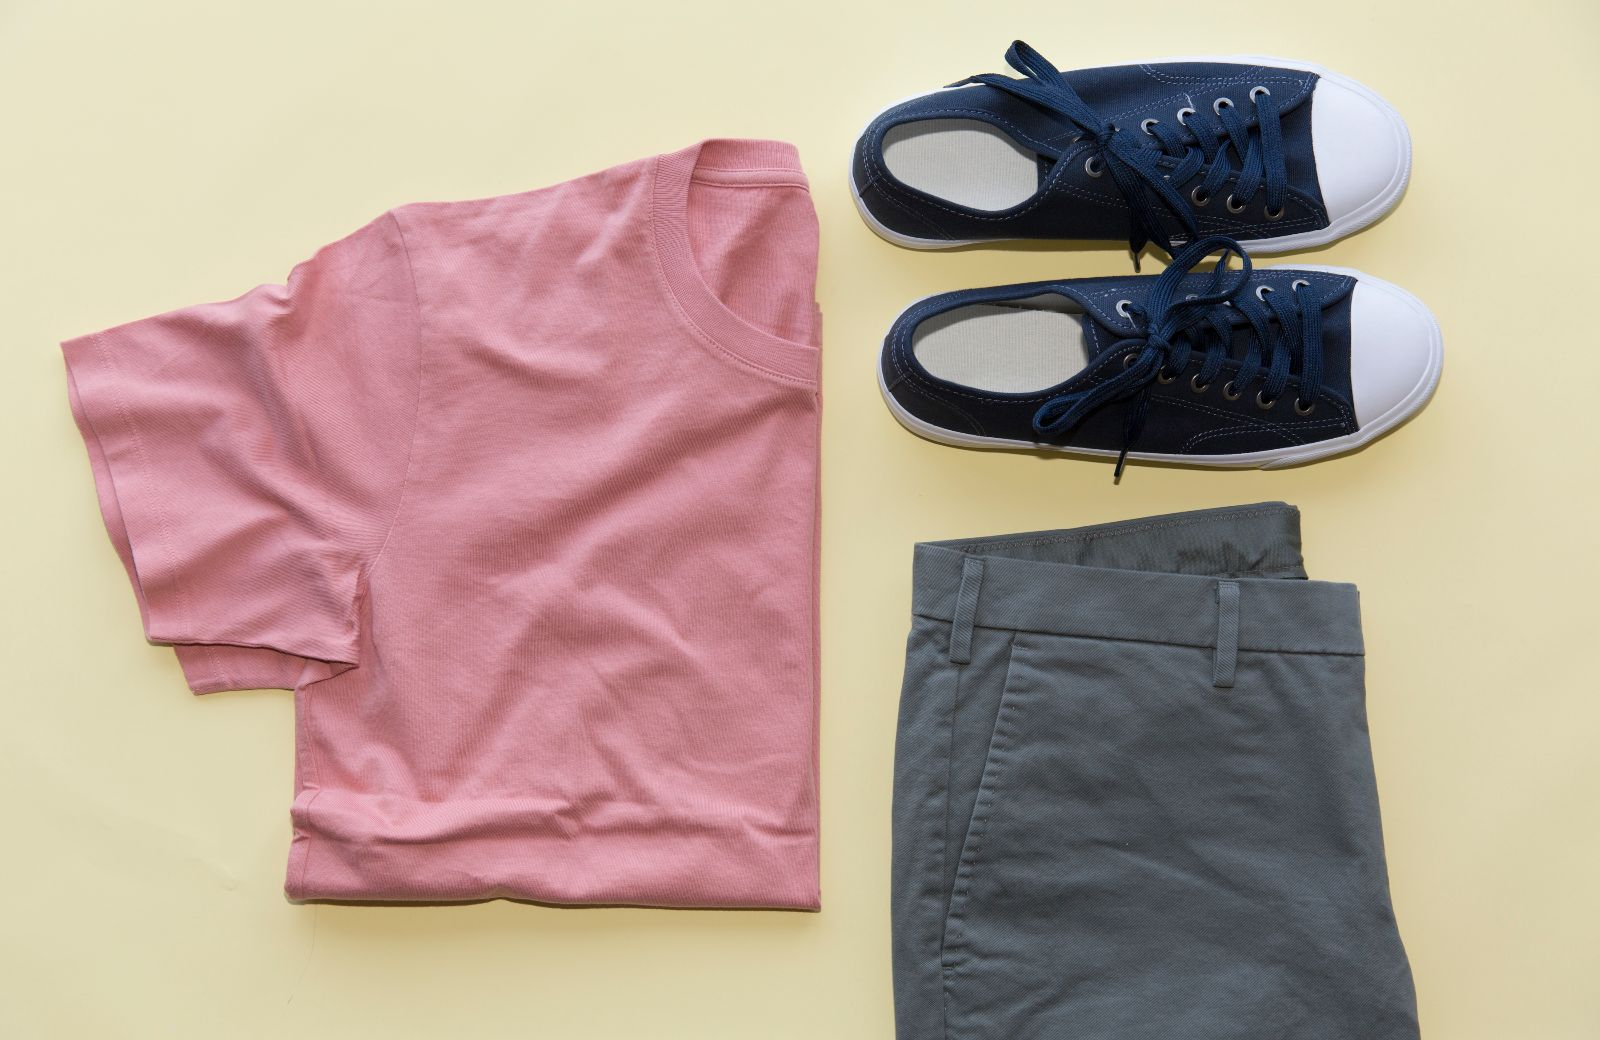 demystifying-office-dress-code-policy-inarticle-casual-men